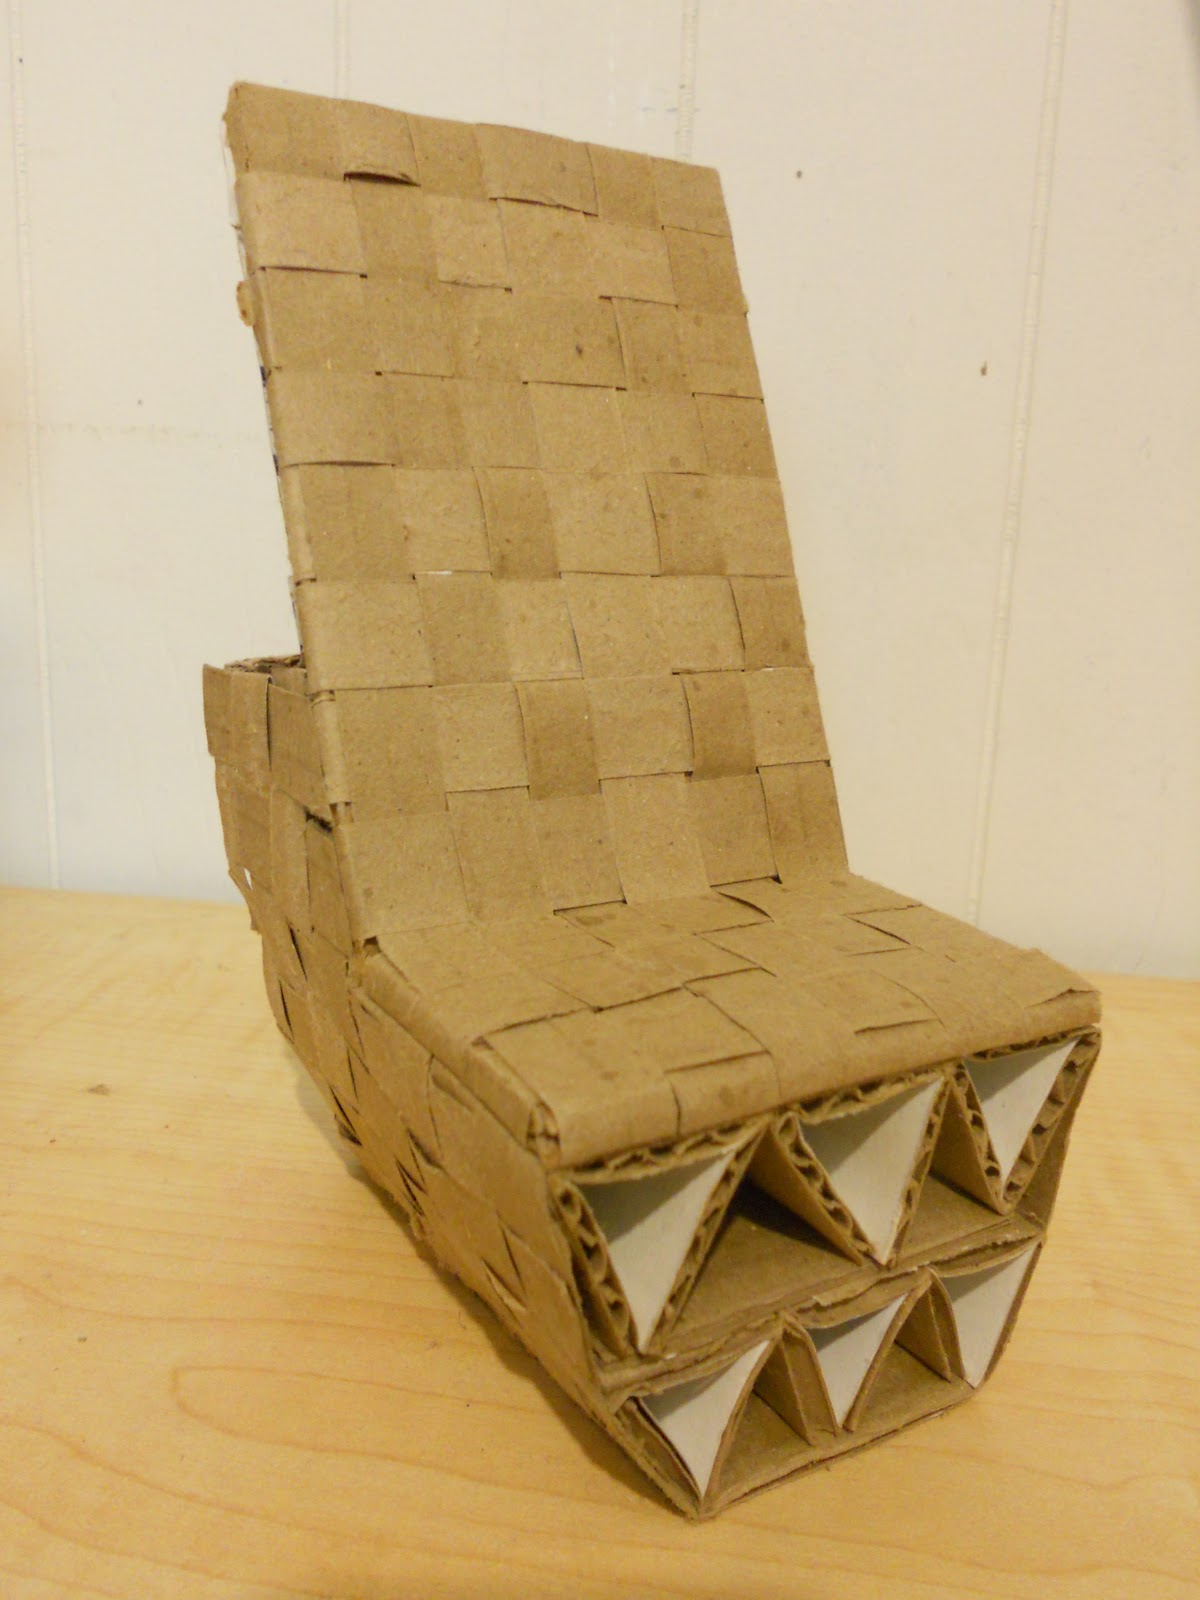 How To Make A Cardboard Chair Create And Design Cardboard Chair